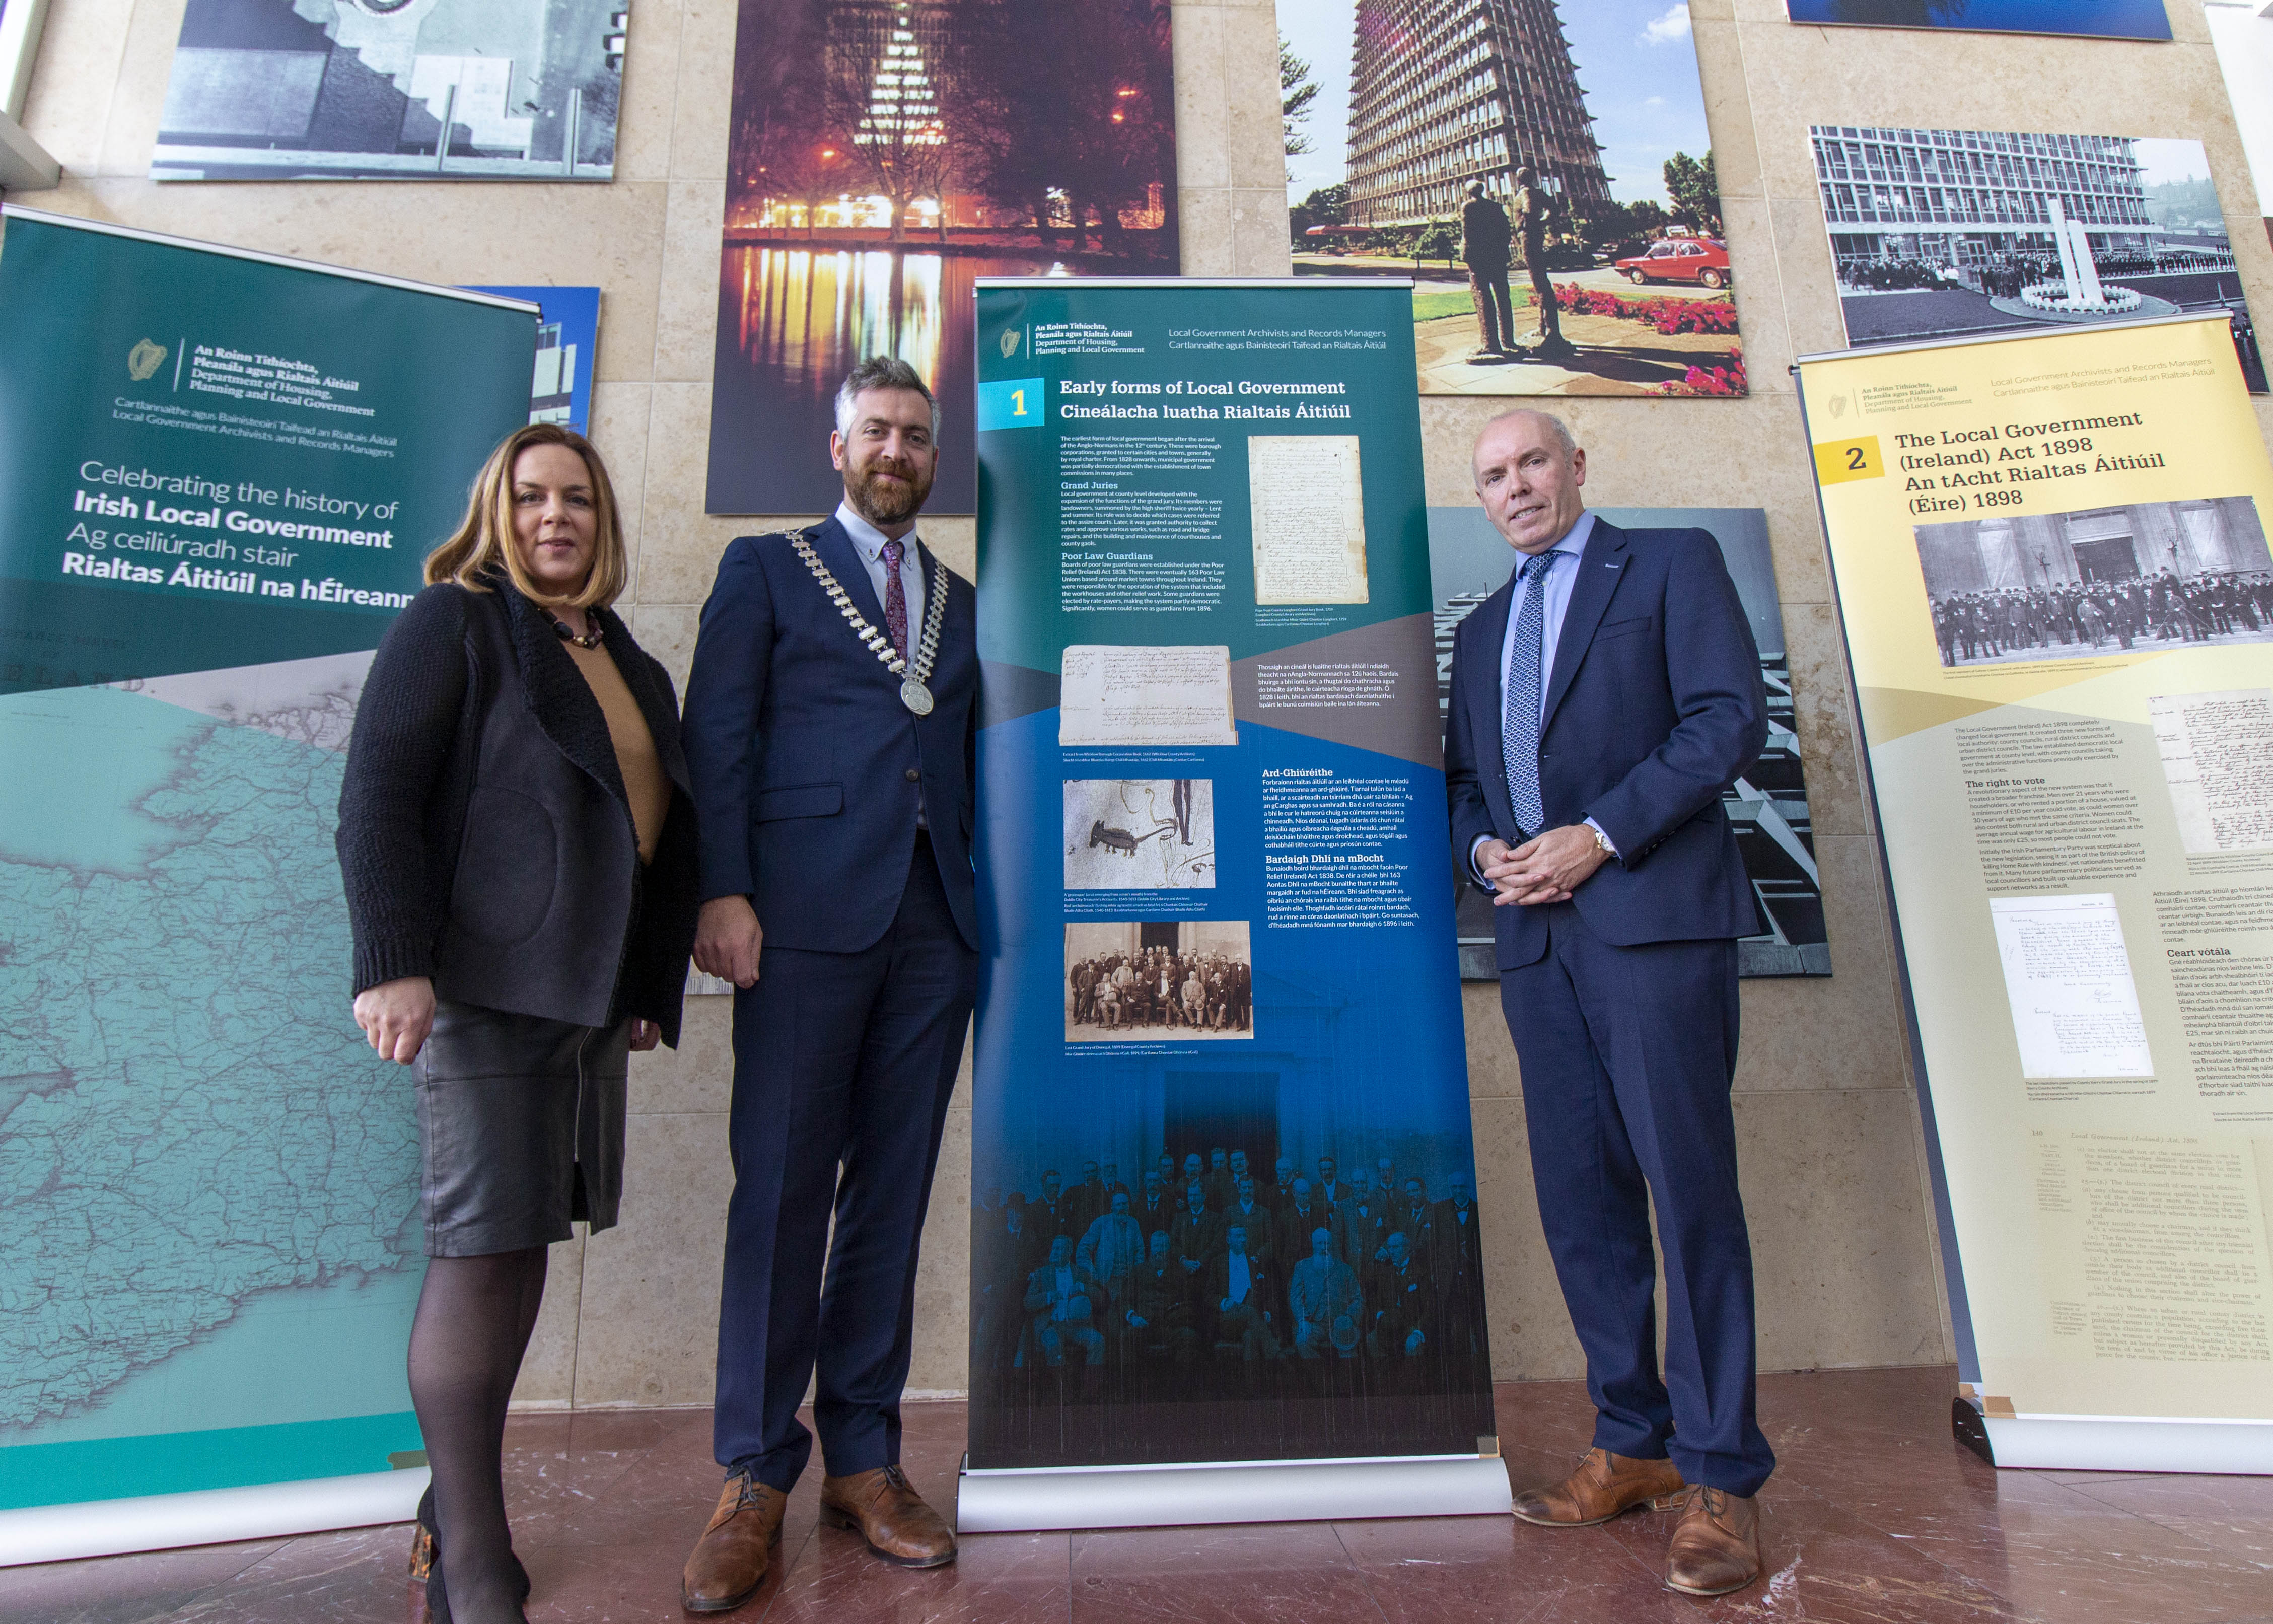 Exhibition Celebrating 120 Years of Irish Local Government on Display in County Hall